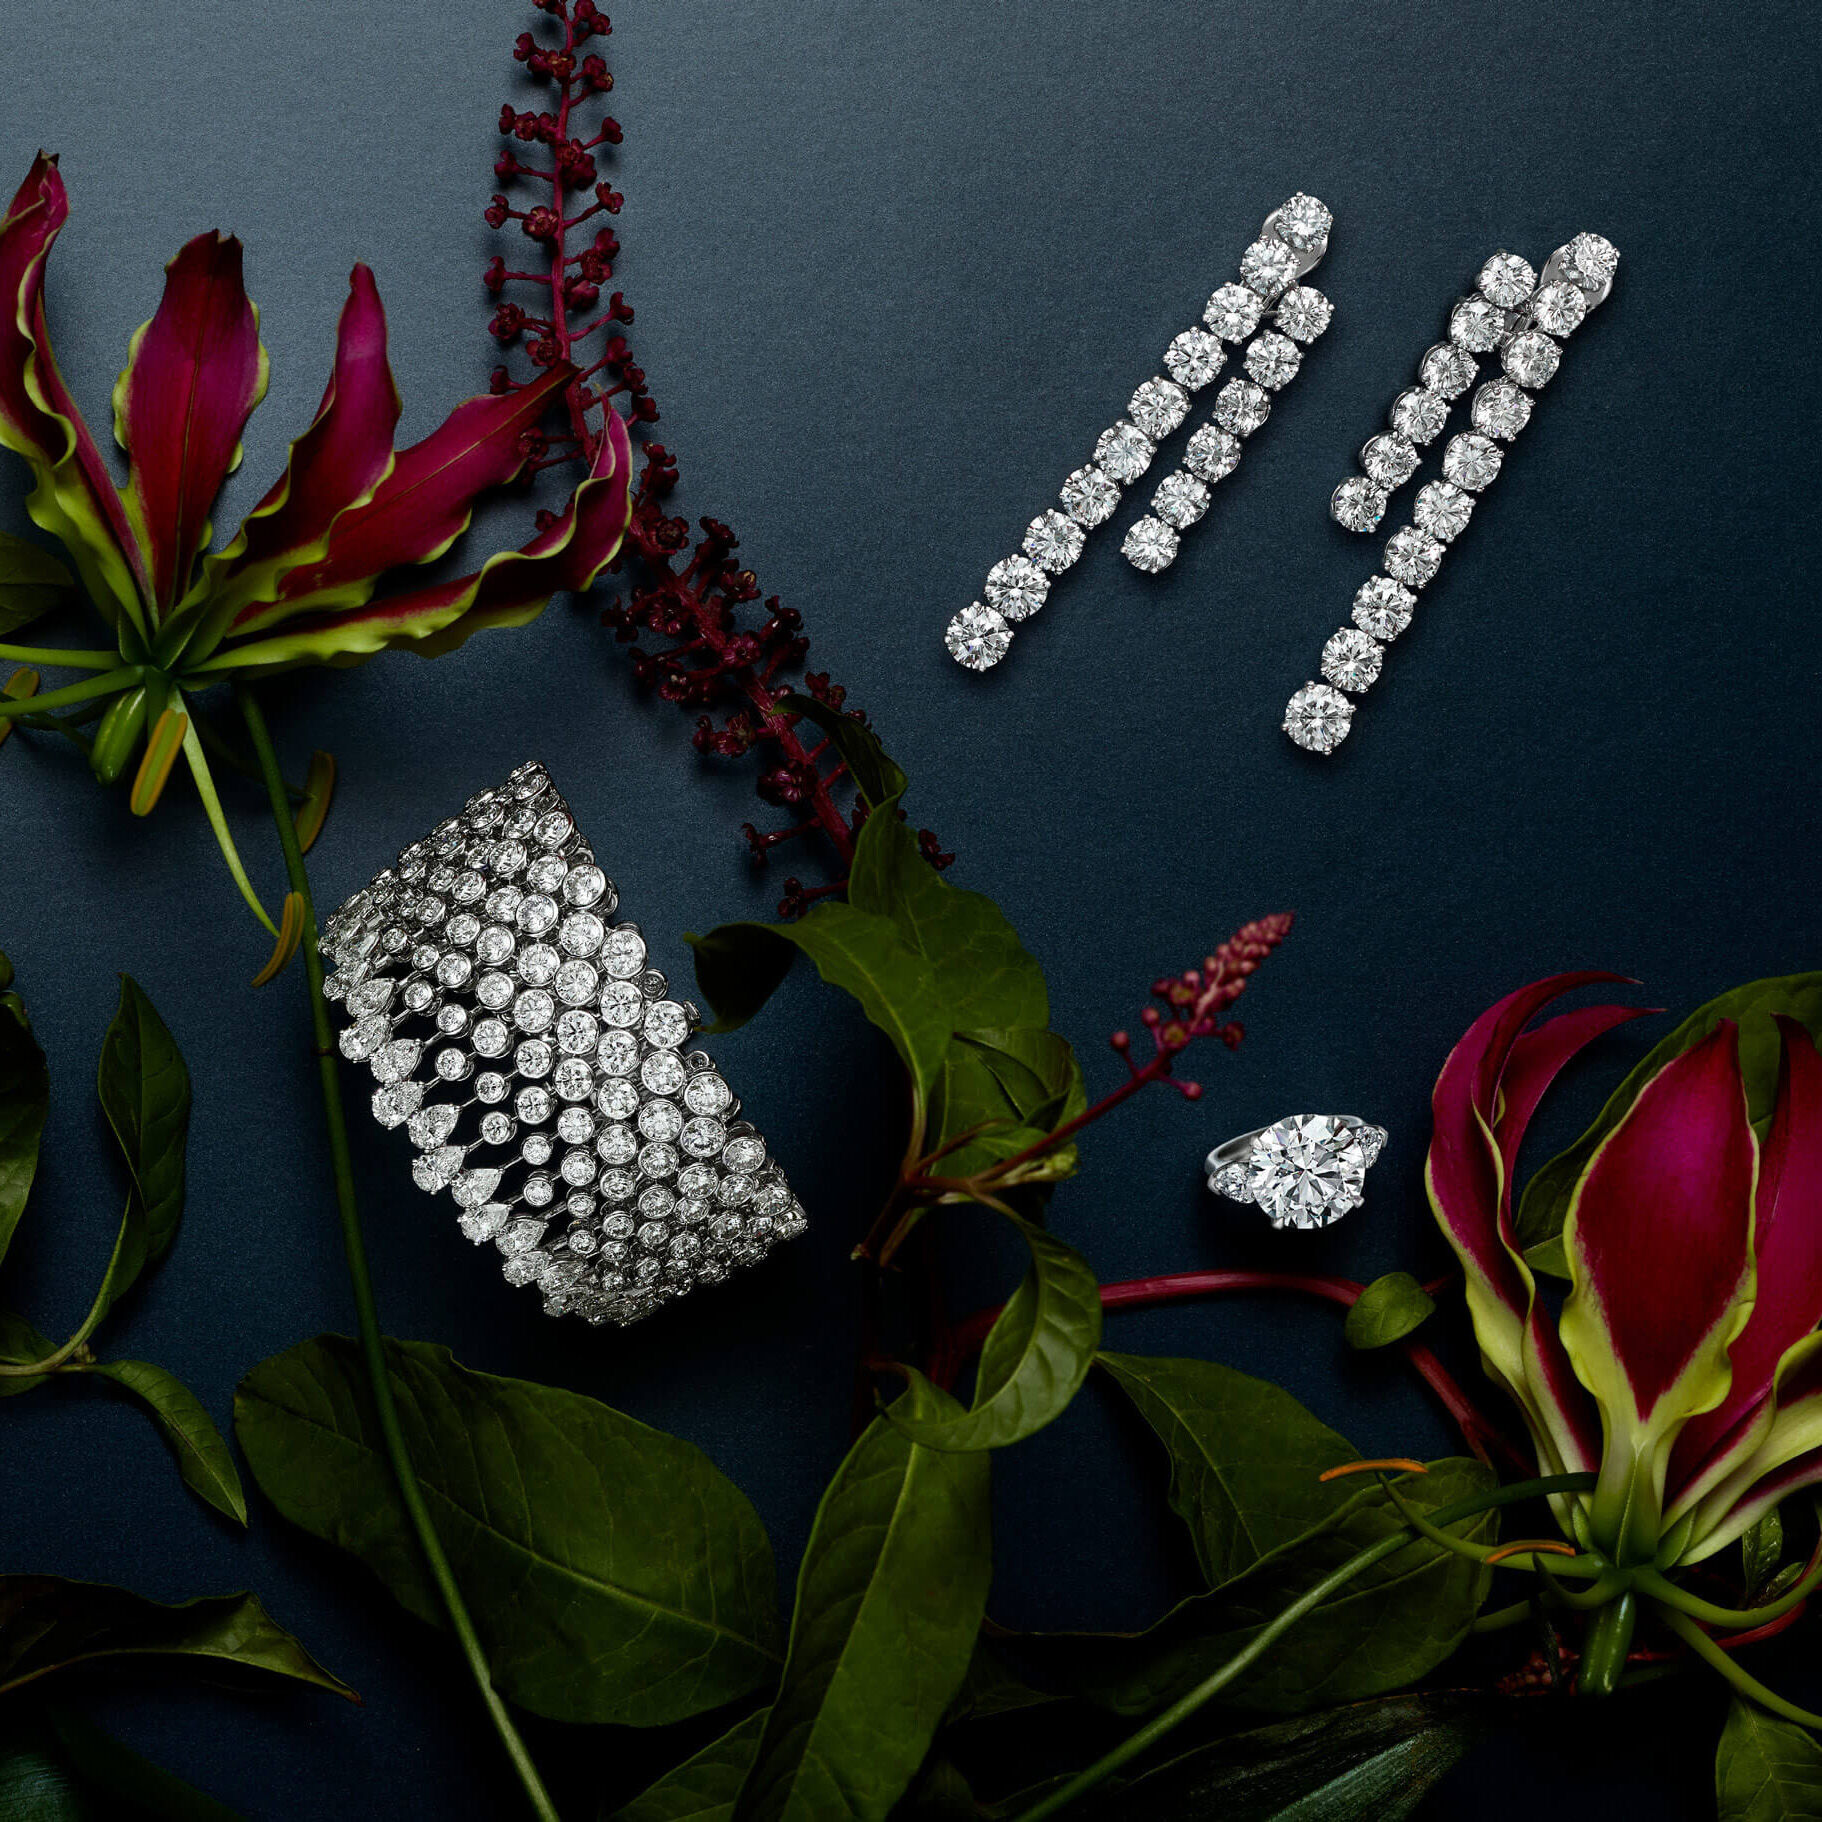 Graff diamond High jewellery with flowers decorations